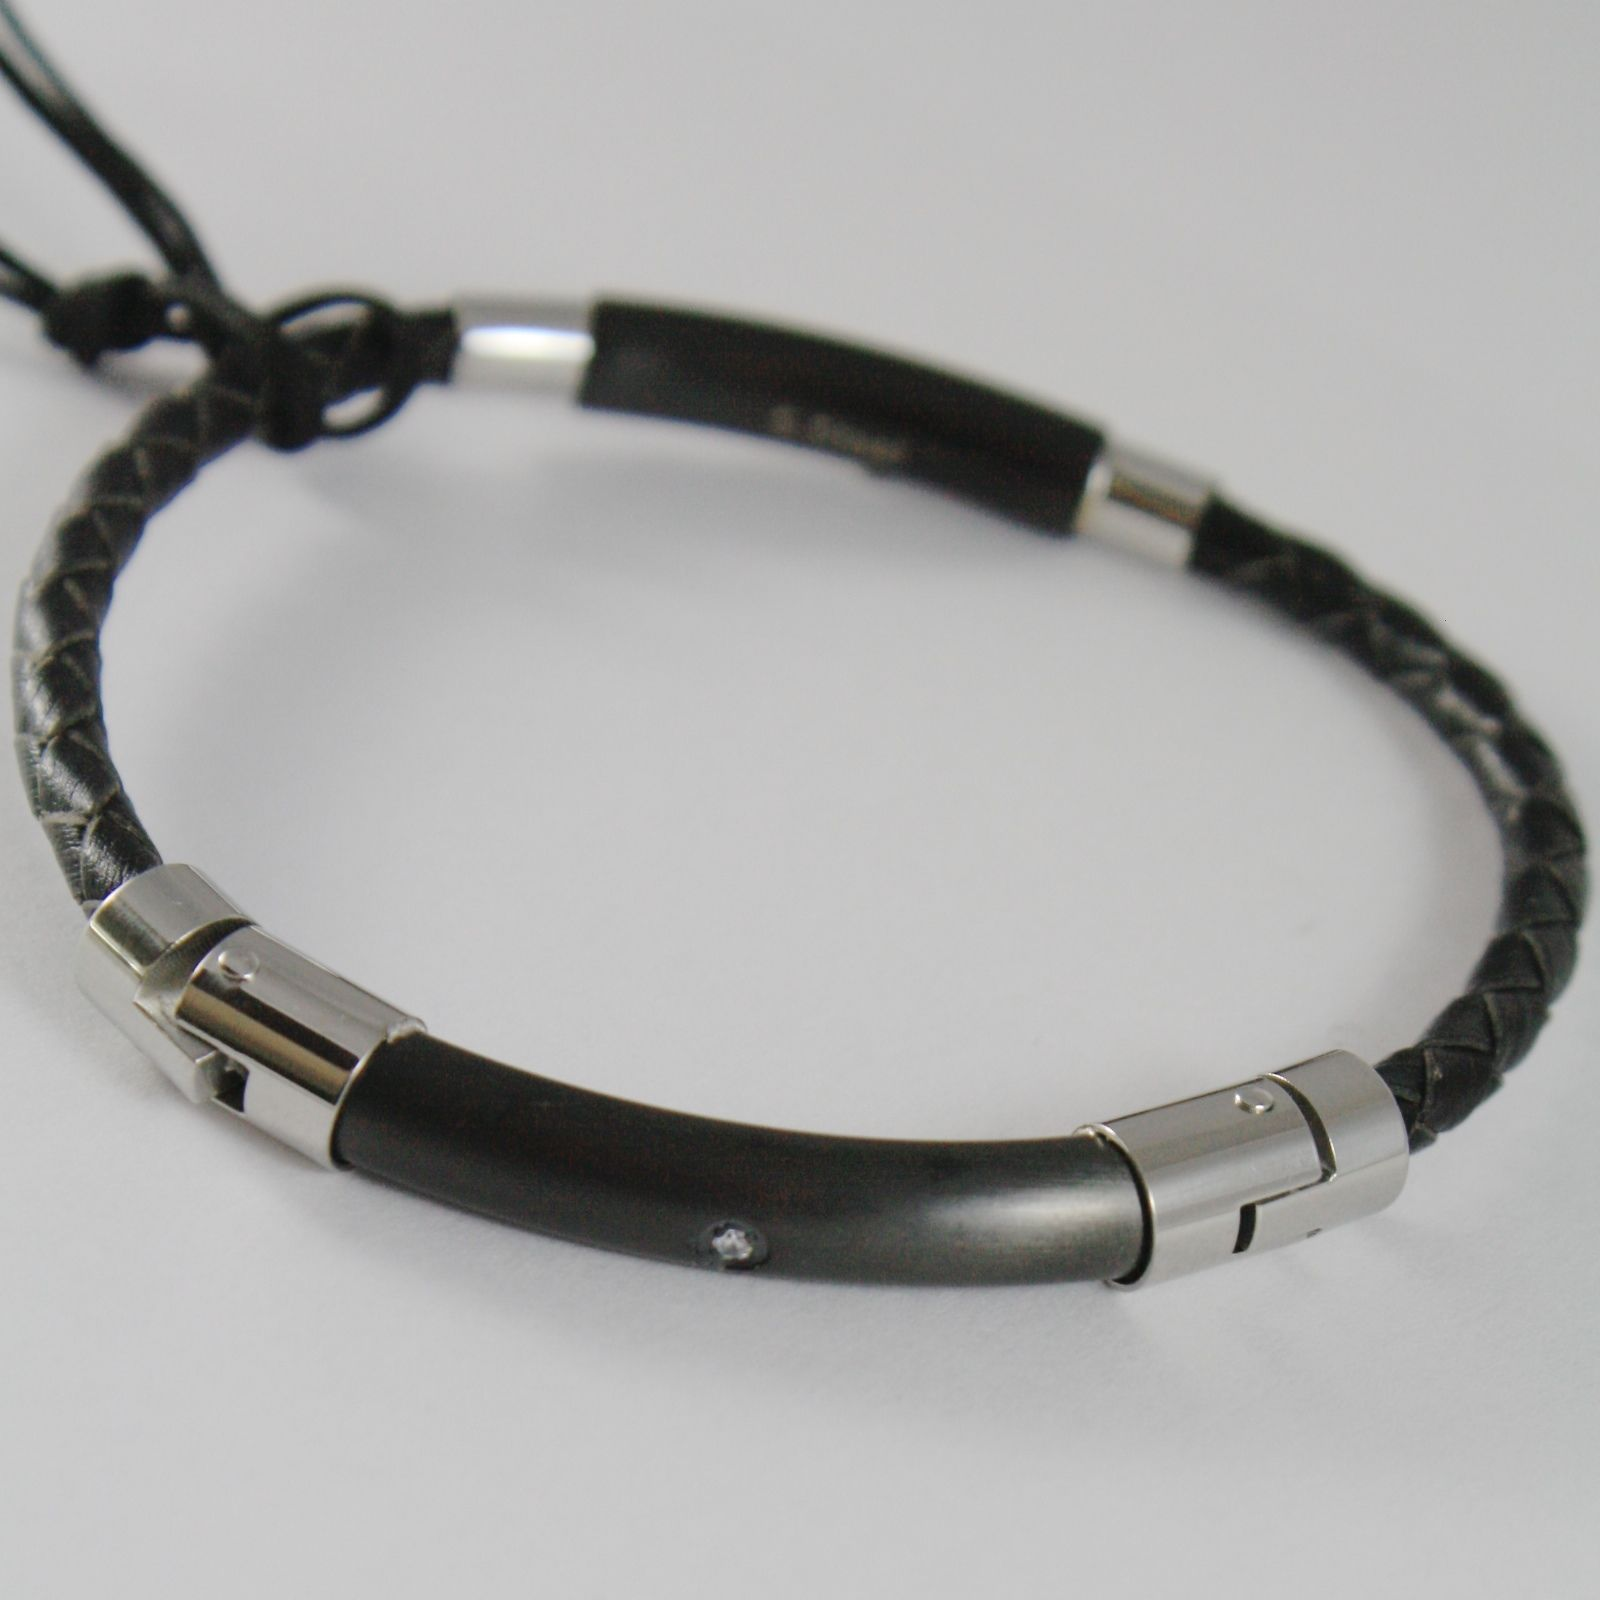 STAINLESS STEEL BLACK BRACELET TUBE PLATE & LEATHER ROPE 4US BY CESARE PACIOTTI